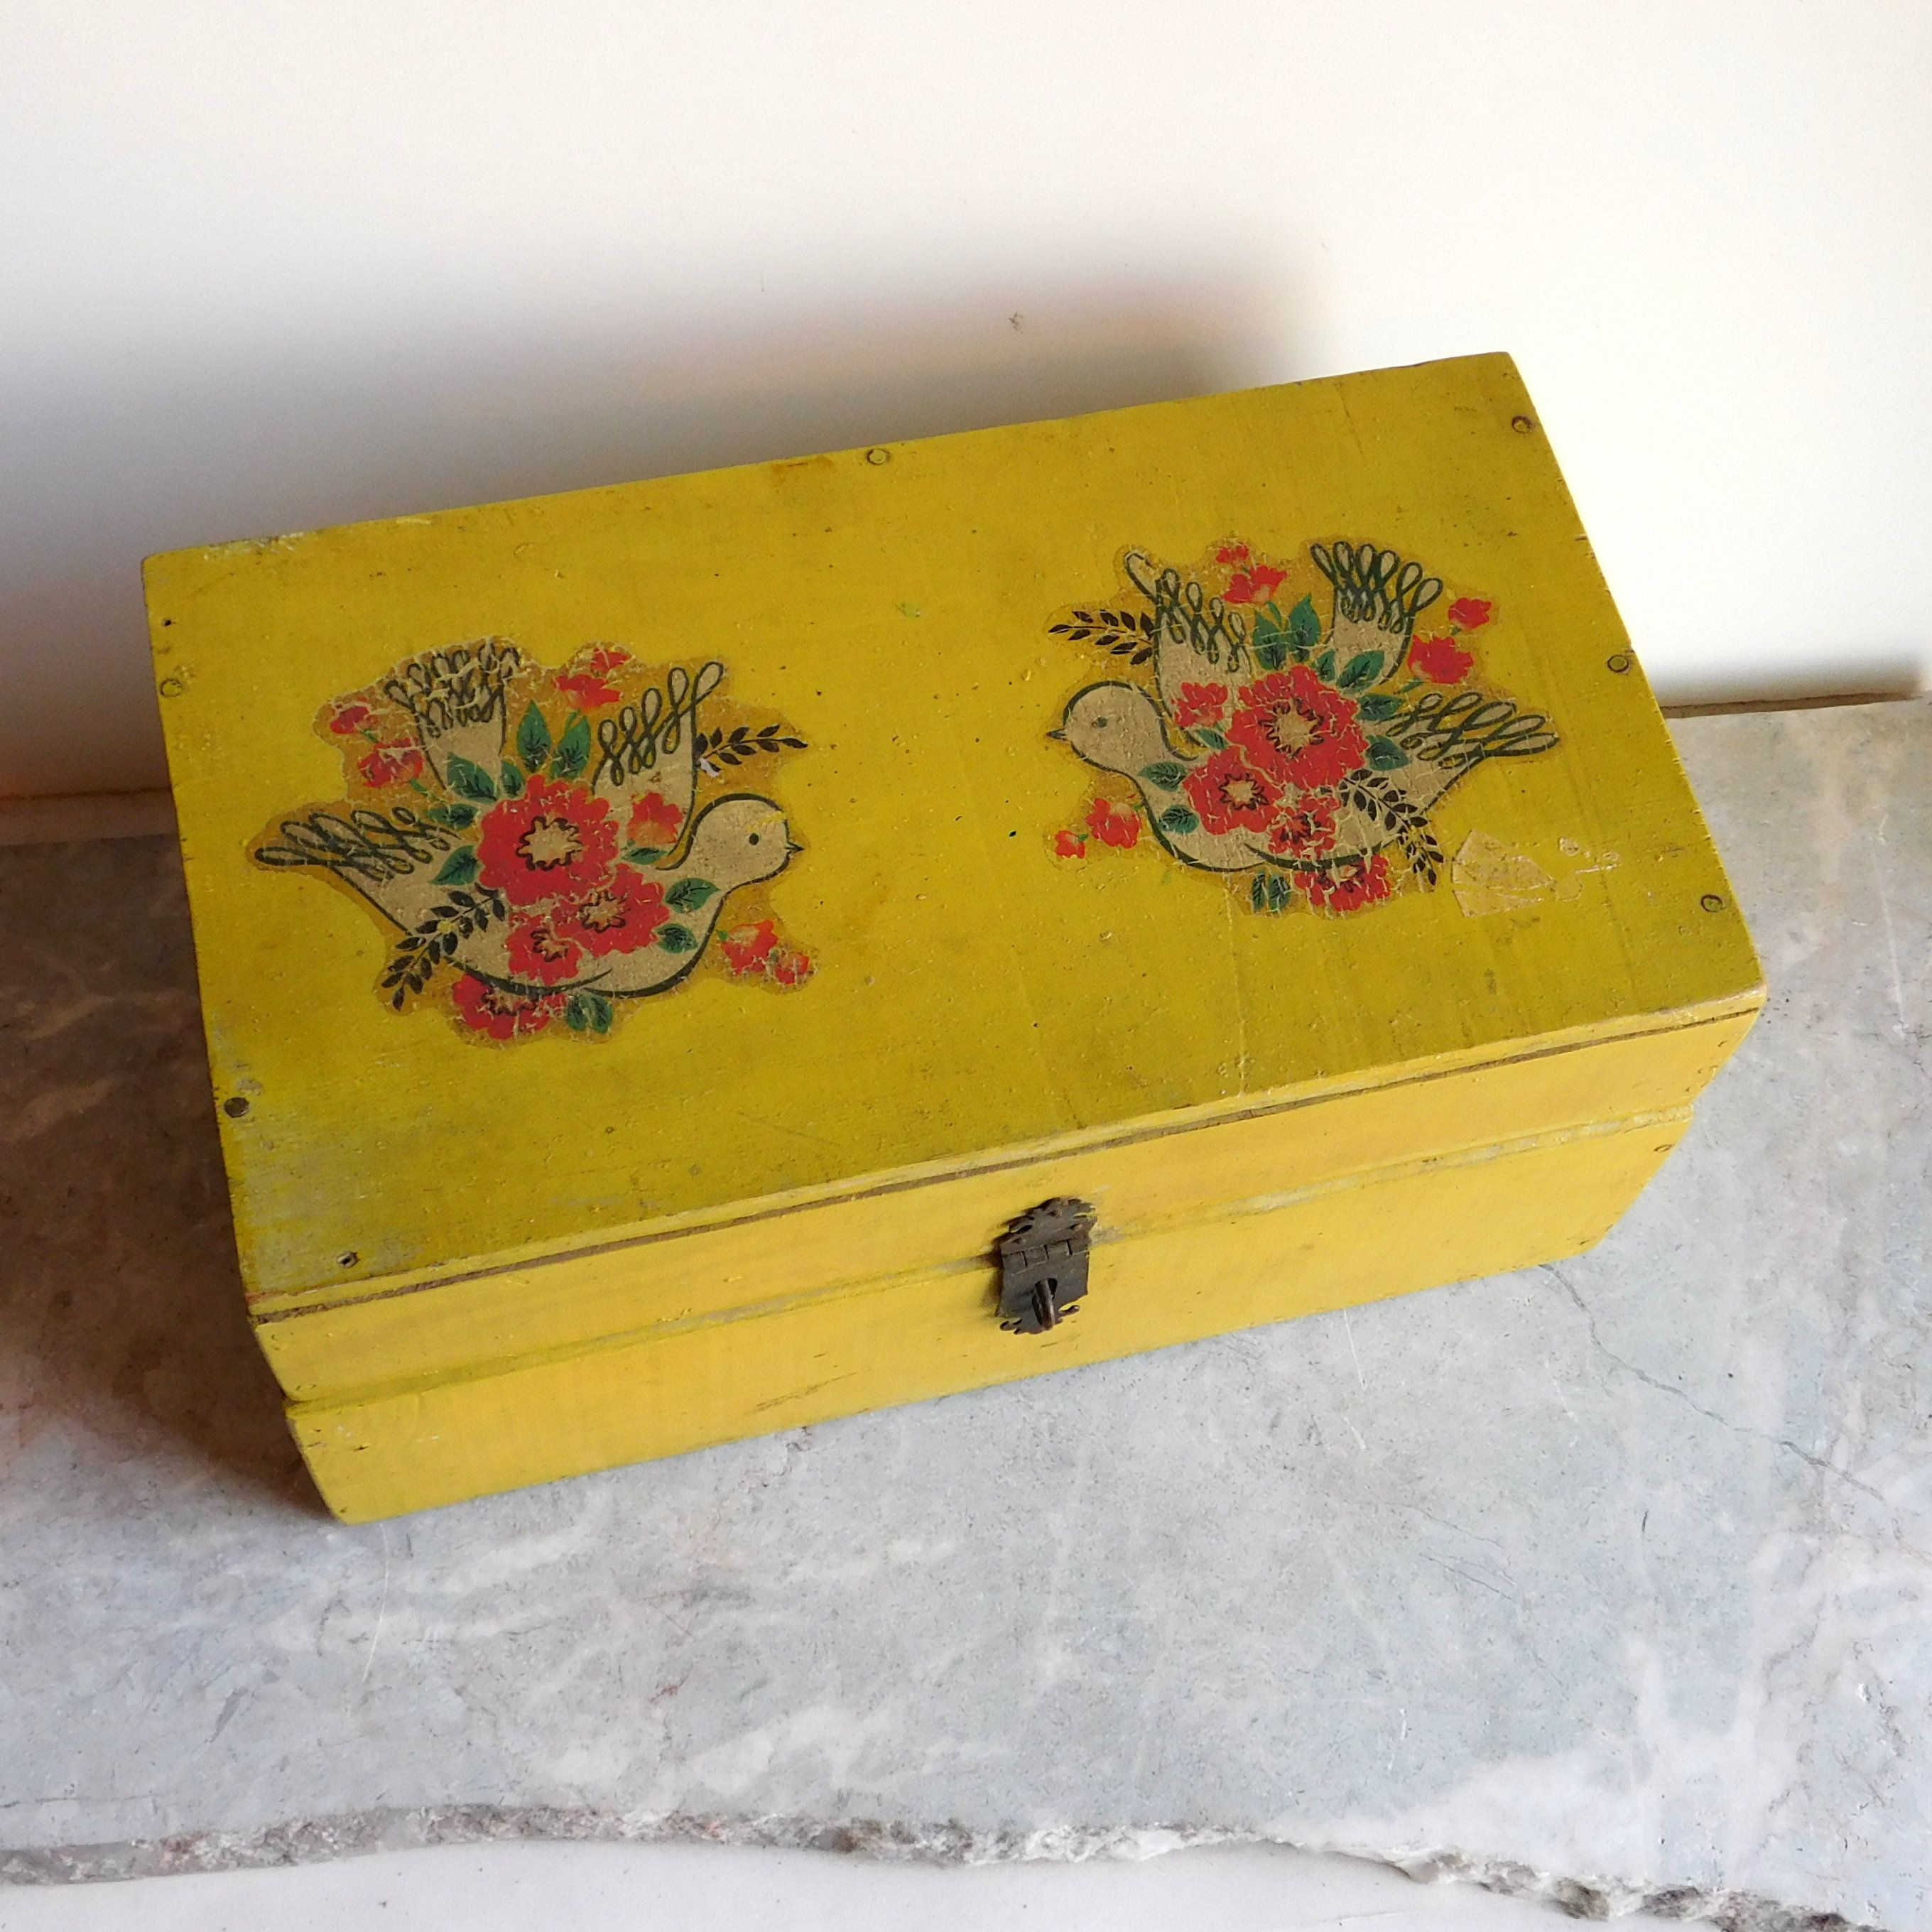 Vintage Hand Painted Wooden Jewelry Box Trinket Box Yellow Etsy Wooden Jewelry Boxes Shabby Cottage Style Hand Painted